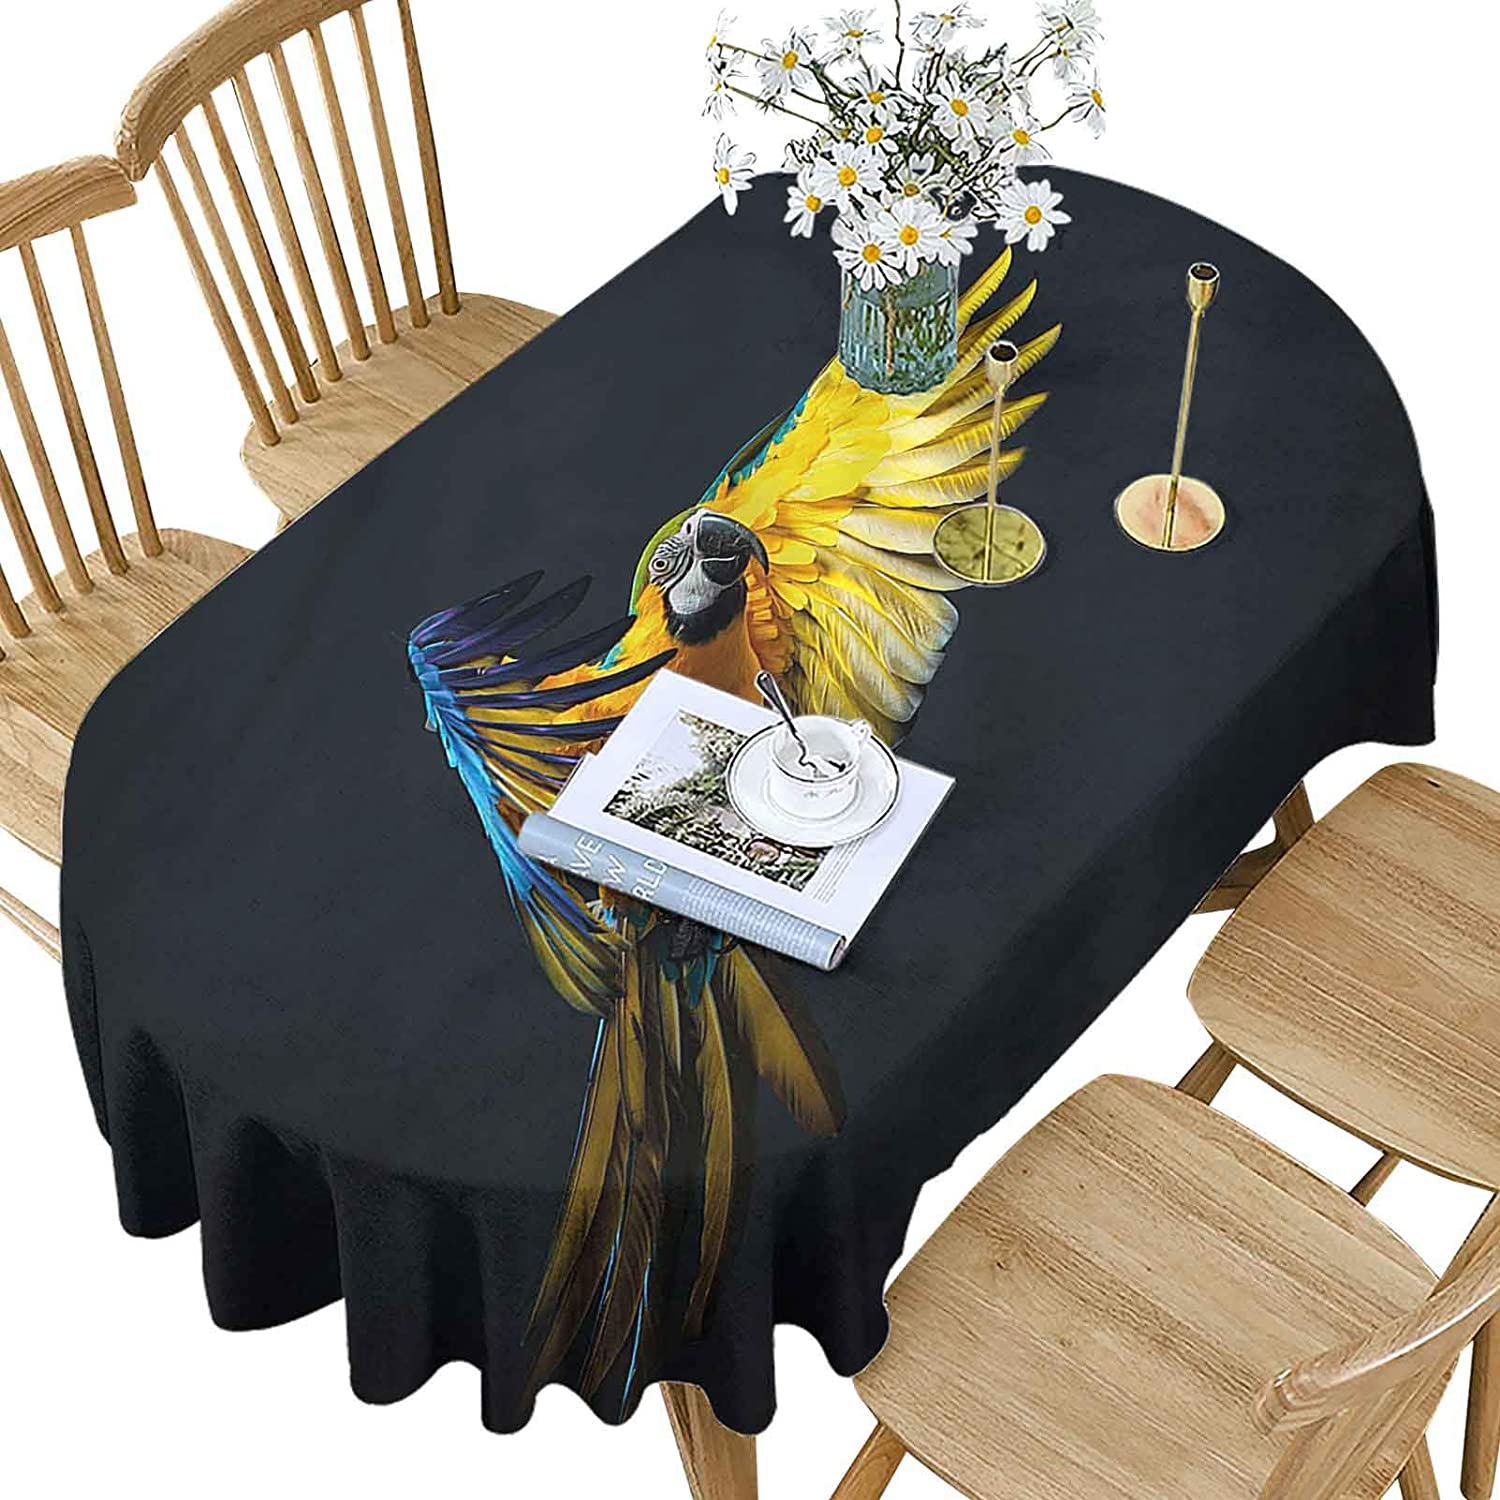 Hiiiman Max 58% OFF Bird Polyester Oval Tablecloth Wi Flying Parrot Sale special price Colorful